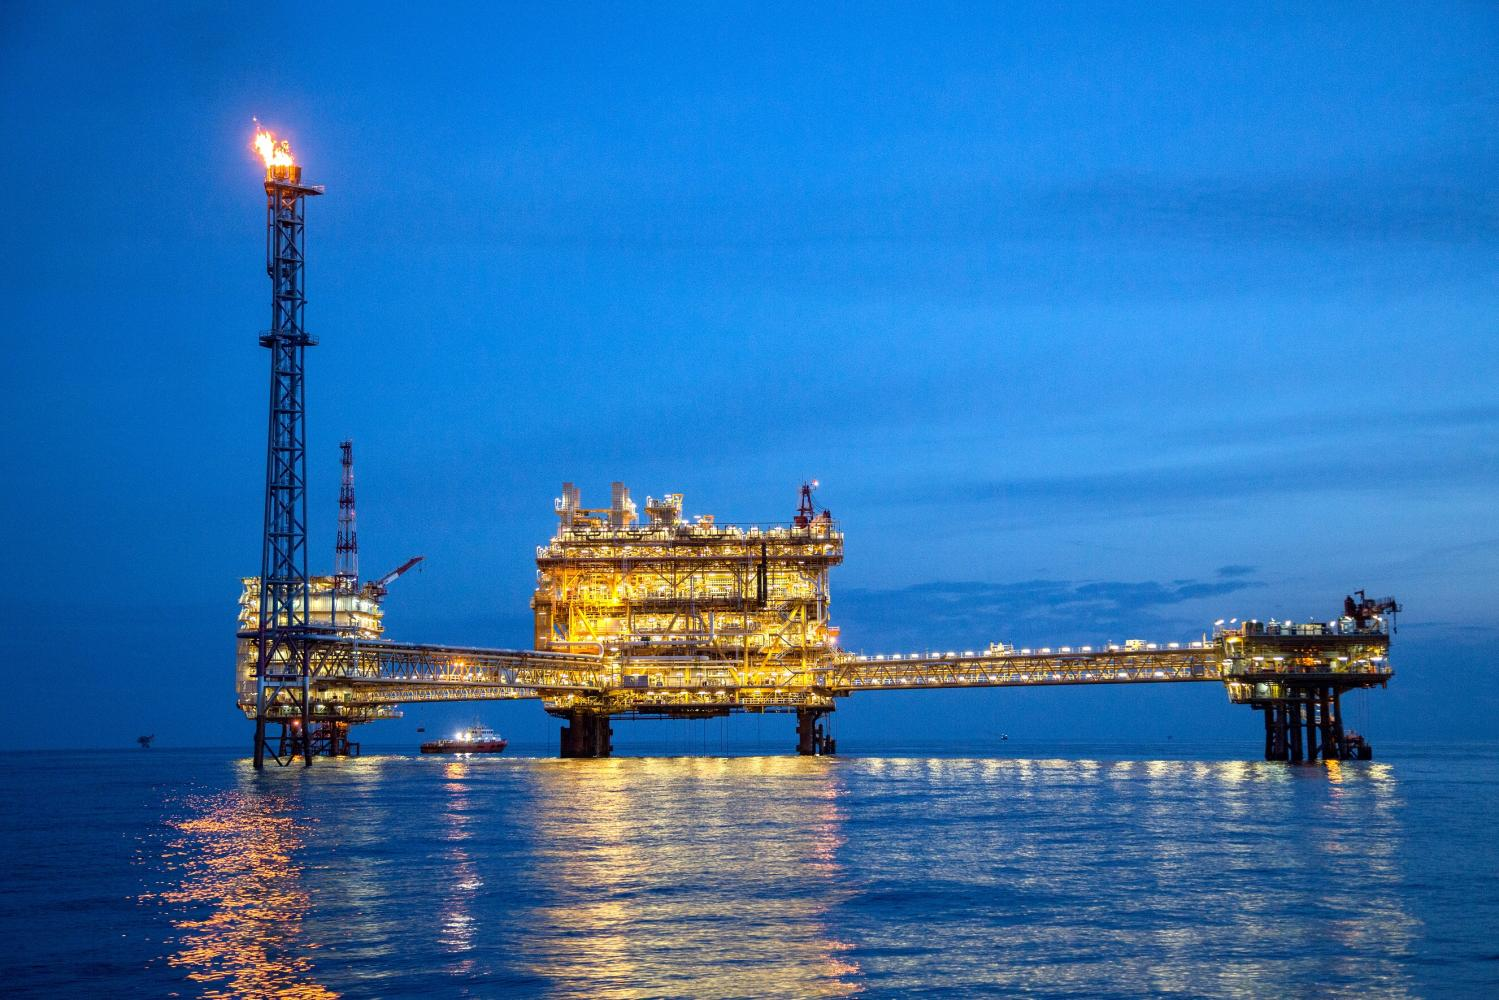 PTTEP's Bongkot offshore gas block in the Gulf of Thailand. A deep plunge in crude oil prices was the main factor causing listed firms' aggregate net profit to tumble by 58% year-on-year in the first quarter.